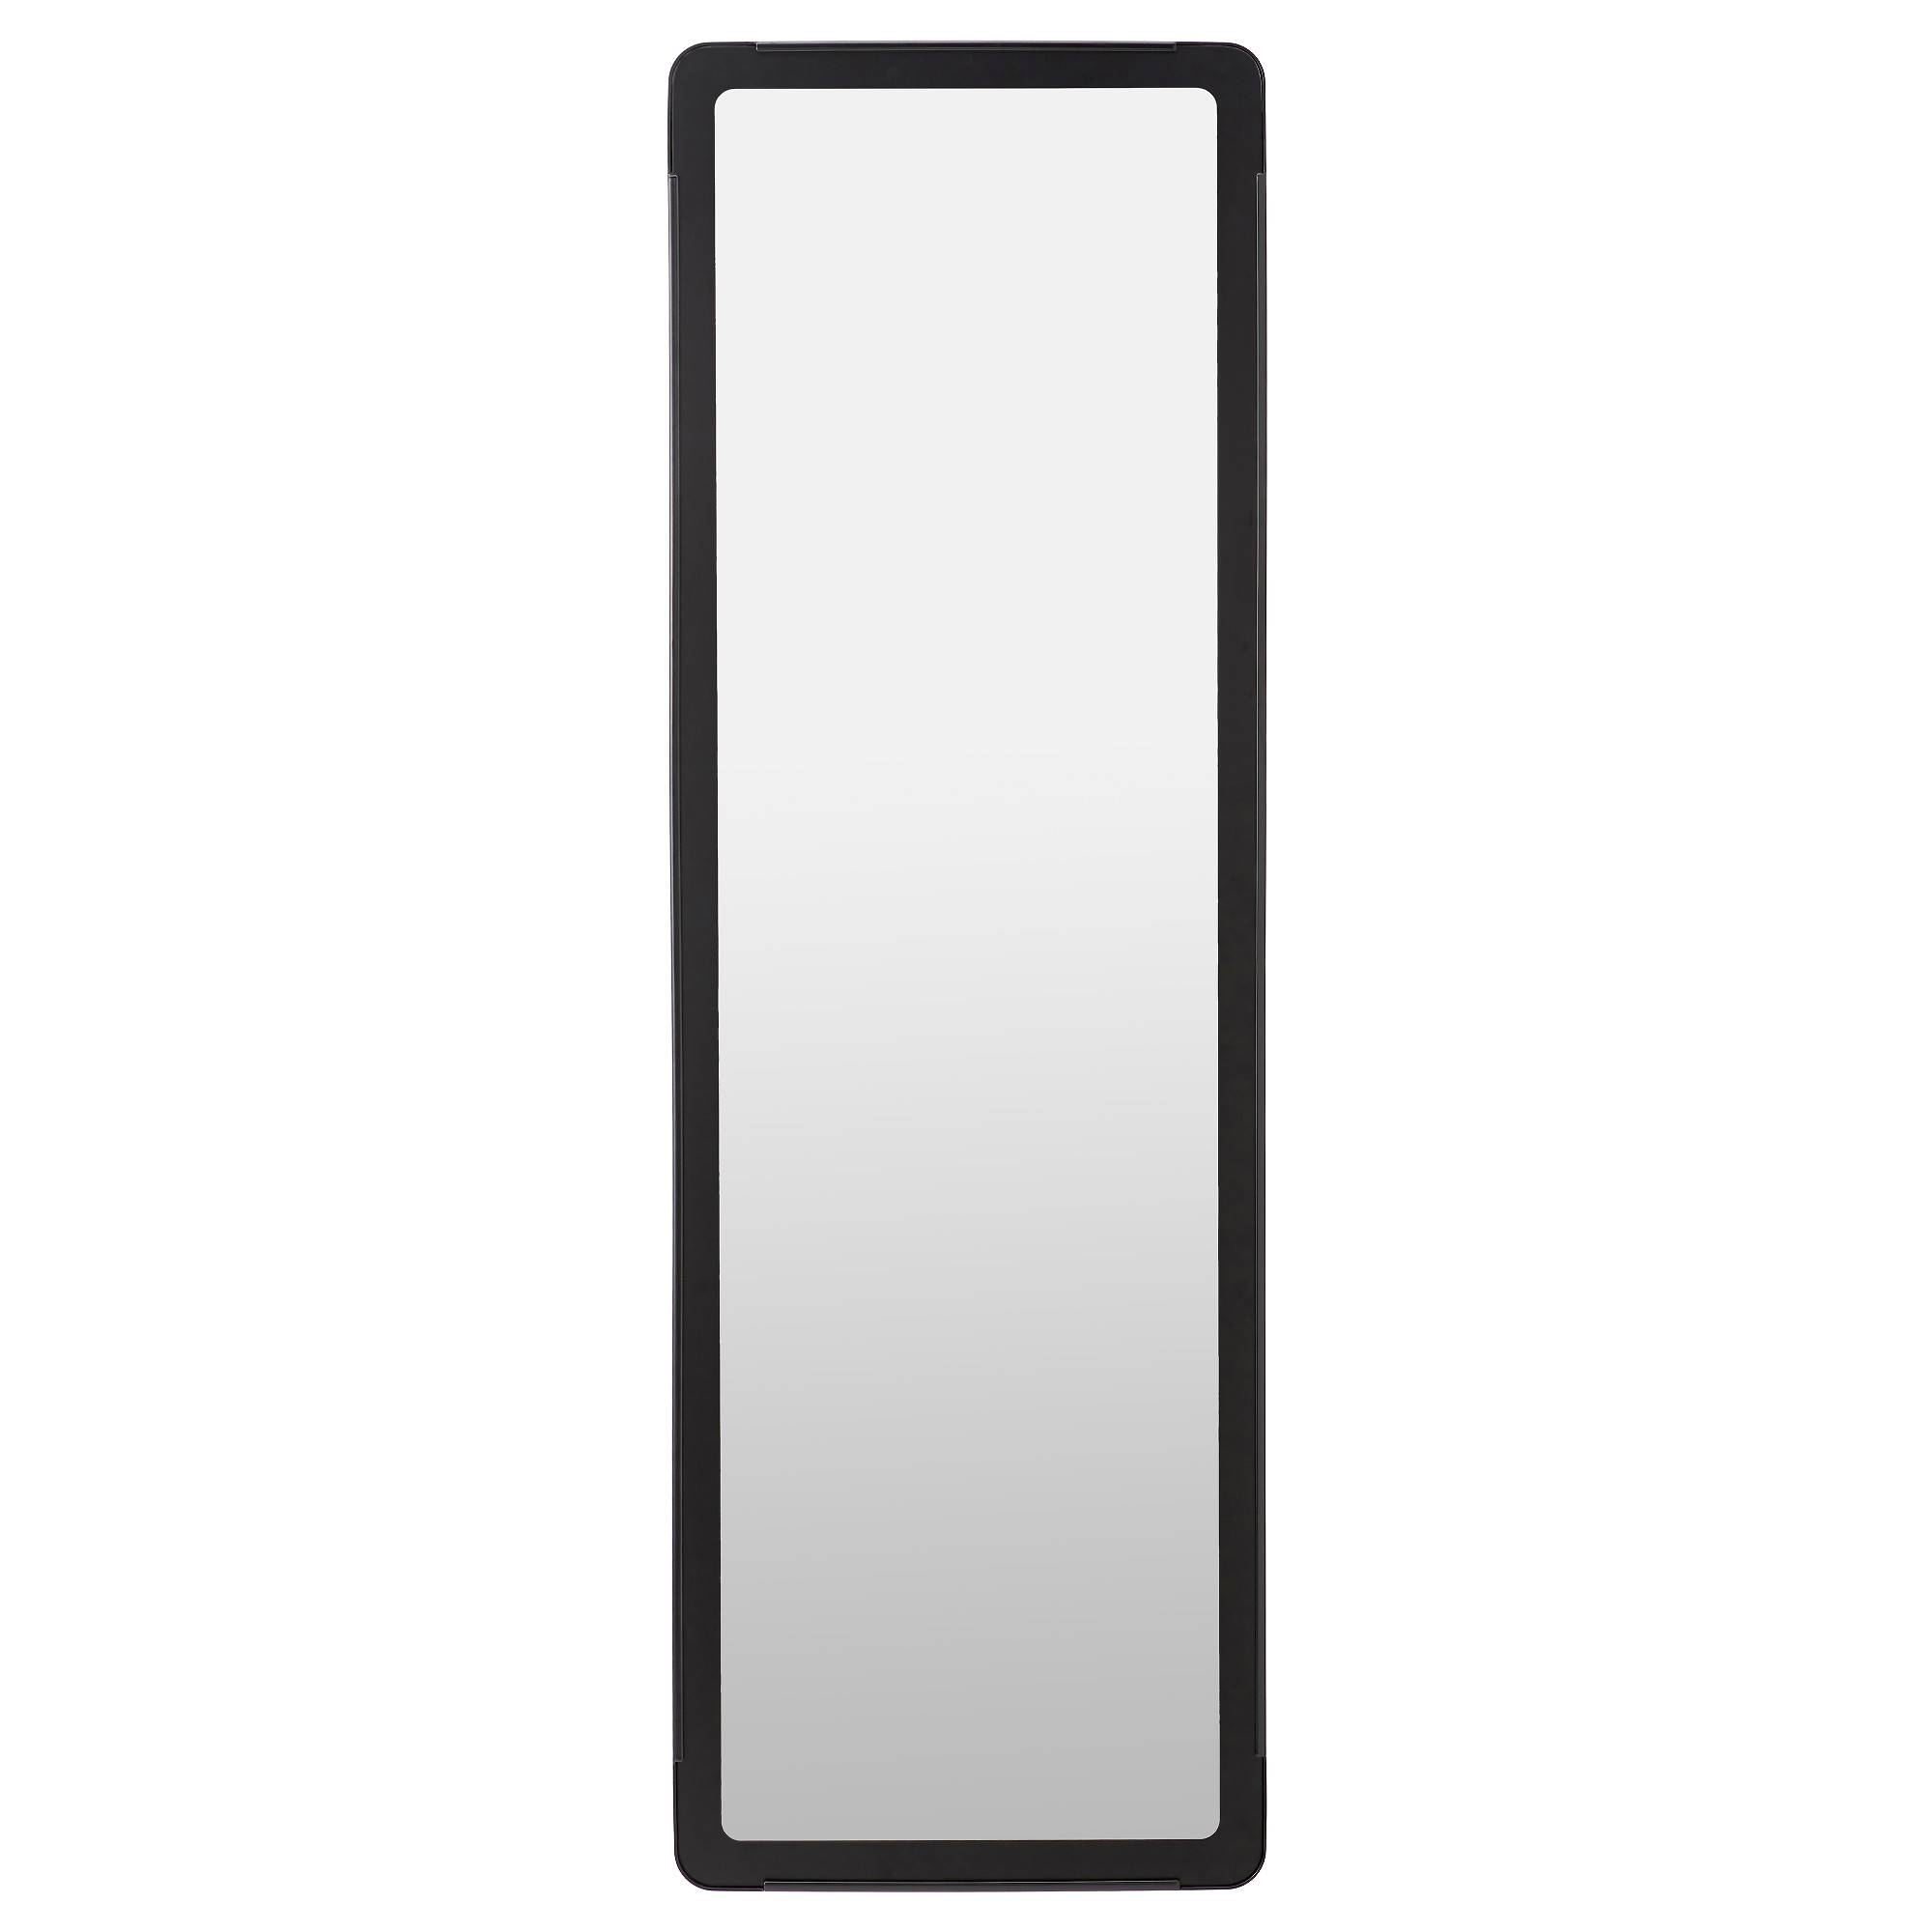 Full-Length Mirrors - Ikea pertaining to Wrought Iron Full Length Mirrors (Image 10 of 25)